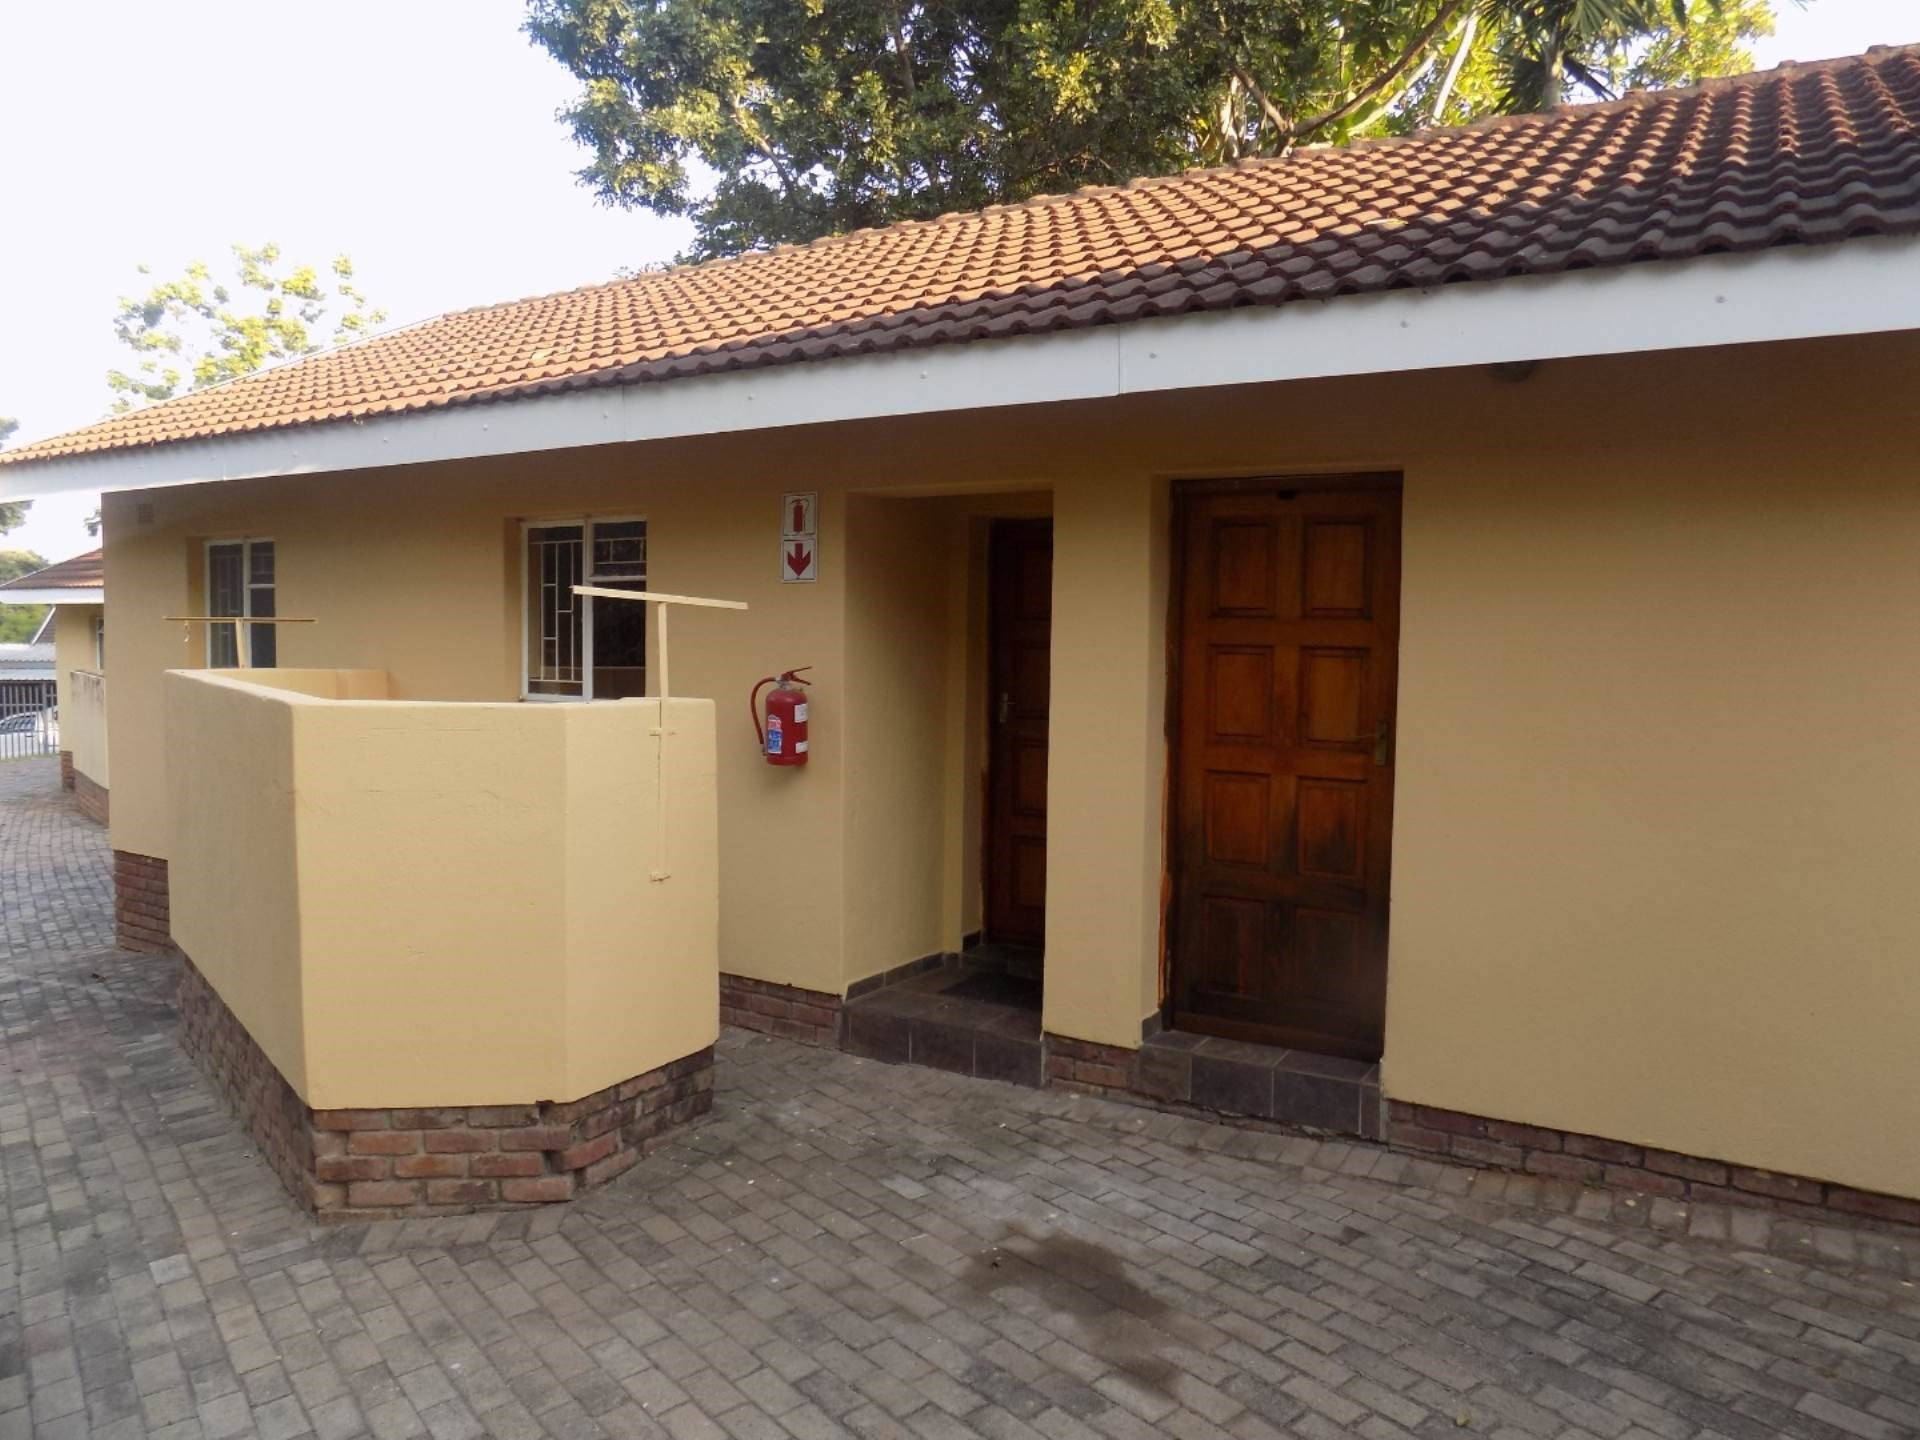 2 Bedroom Townhouse for Sale in Arborpark